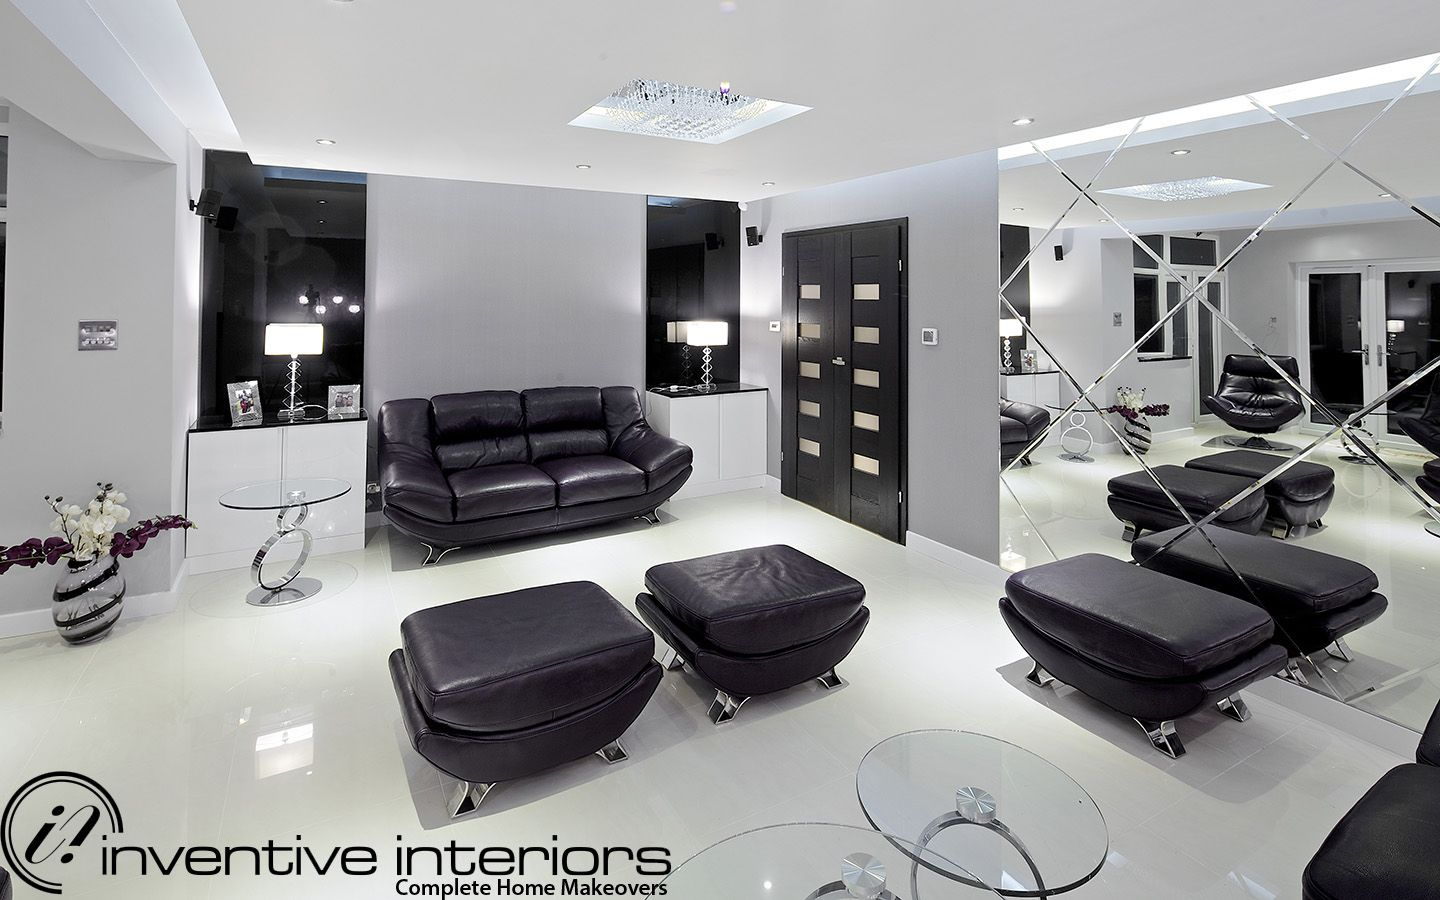 House design interiors luxury homes luxurious houses interieur architecture interior decorating home also pin by inventive on the chigwell complete rh in pinterest